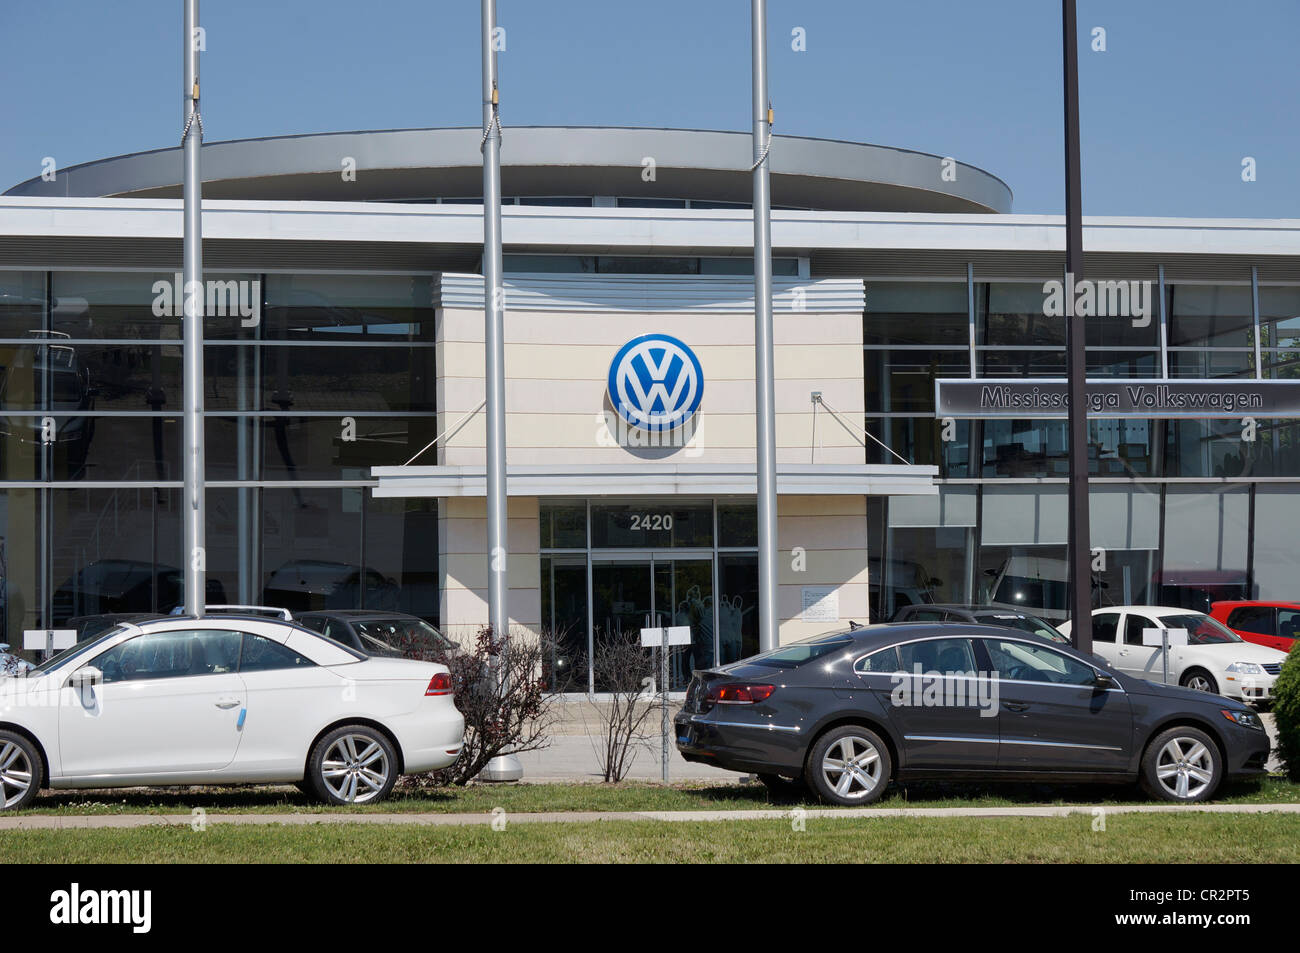 Volkswagen Dealership Entrance - Stock Image